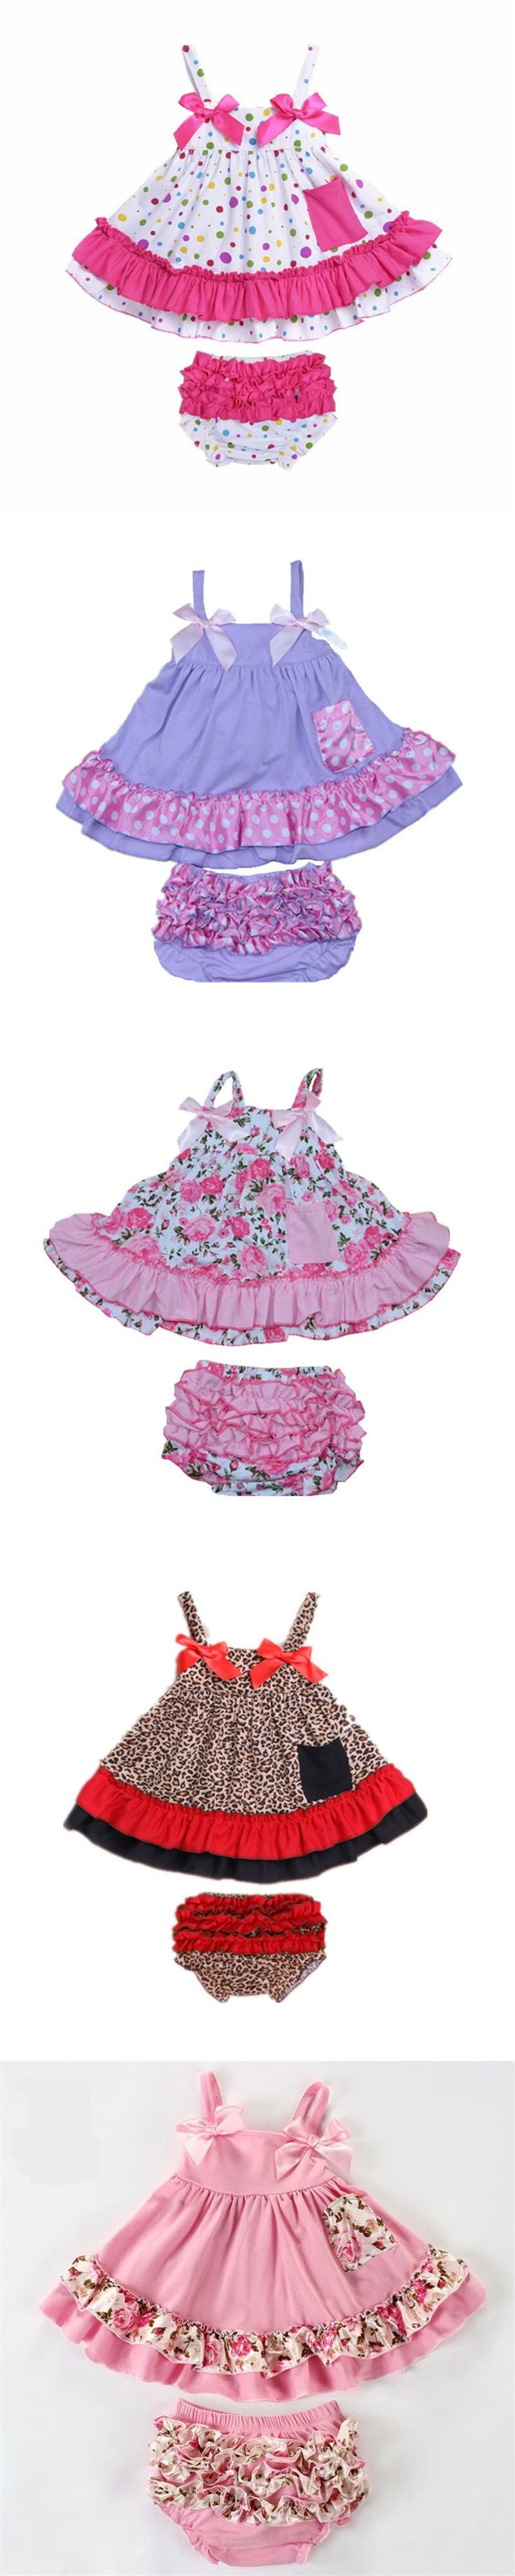 Baby Clothing Set Summer Girls Dress For Newborn Baby Sets Cotton Baby Girl Clothes Sling Shirt +Short Bloomers Girl Dresses B-3 $15.8